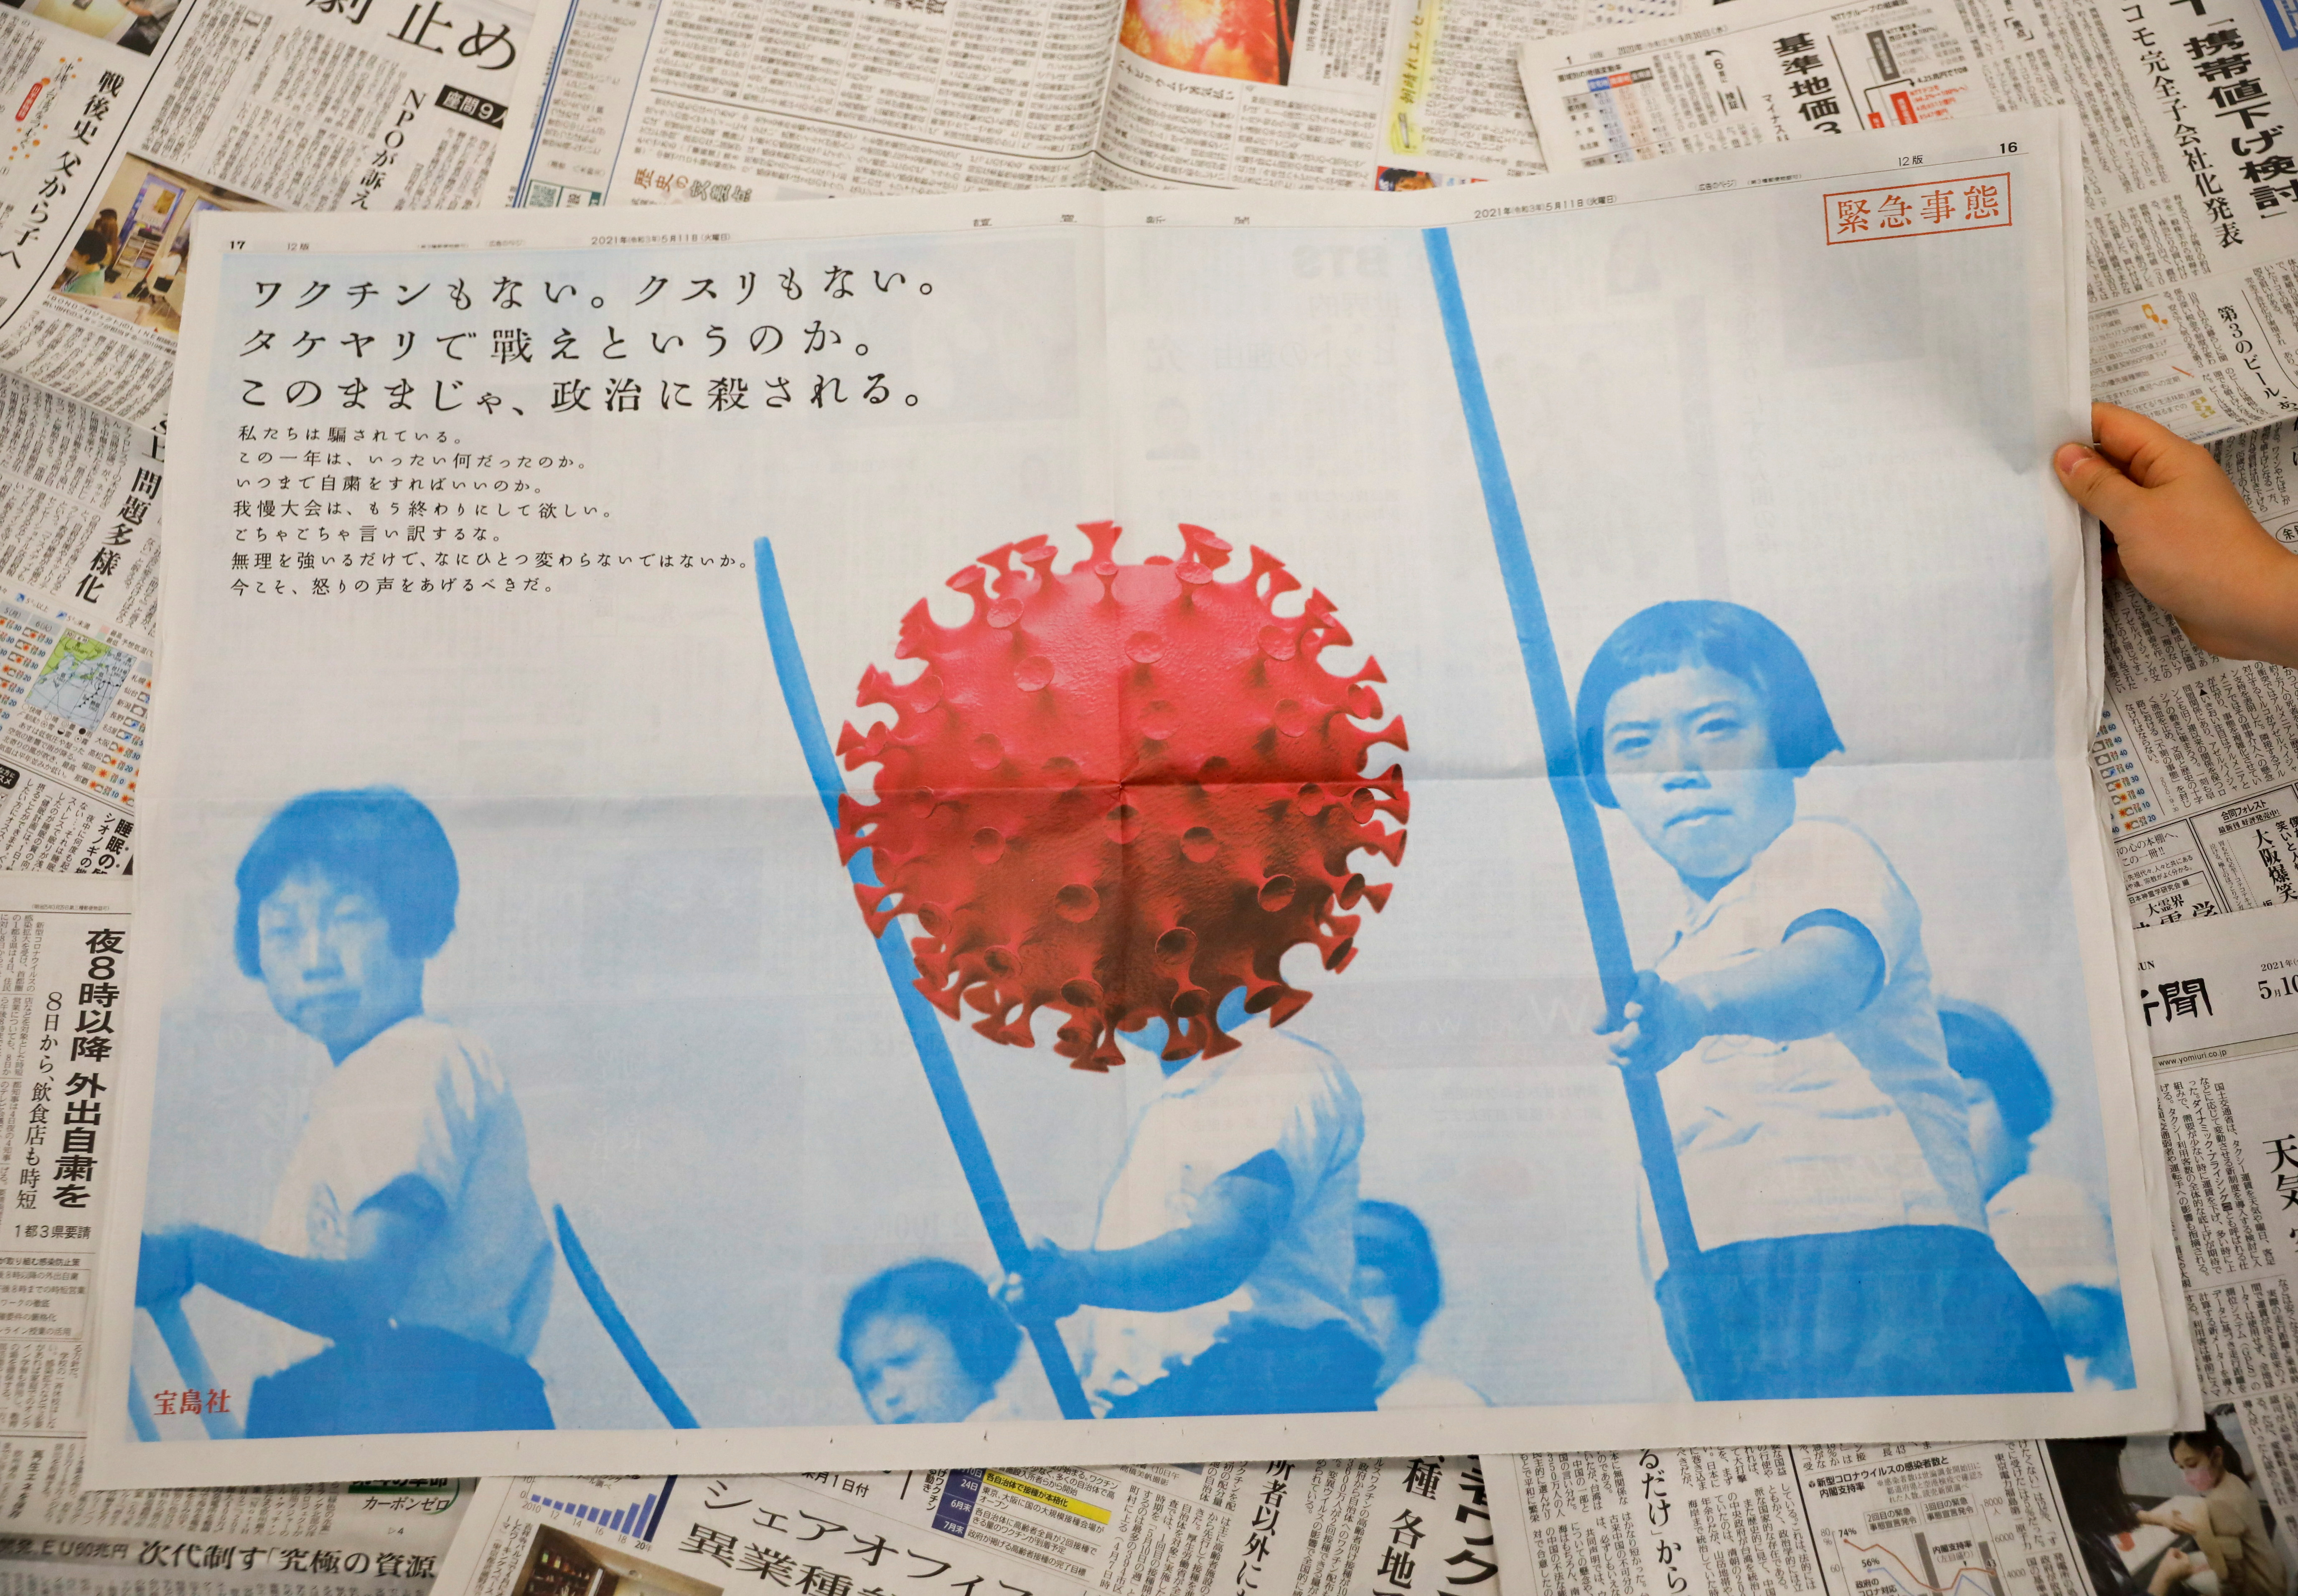 A full-page ad by magazine publisher Takarajimasha, with message reading 'No vaccine, no medication. Are we supposed to fight with bamboo spears? If things continue as they are, politics are going to kill us,' is seen on a newspaper in Tokyo, Japan May 11, 2021.  REUTERS/Issei Kato